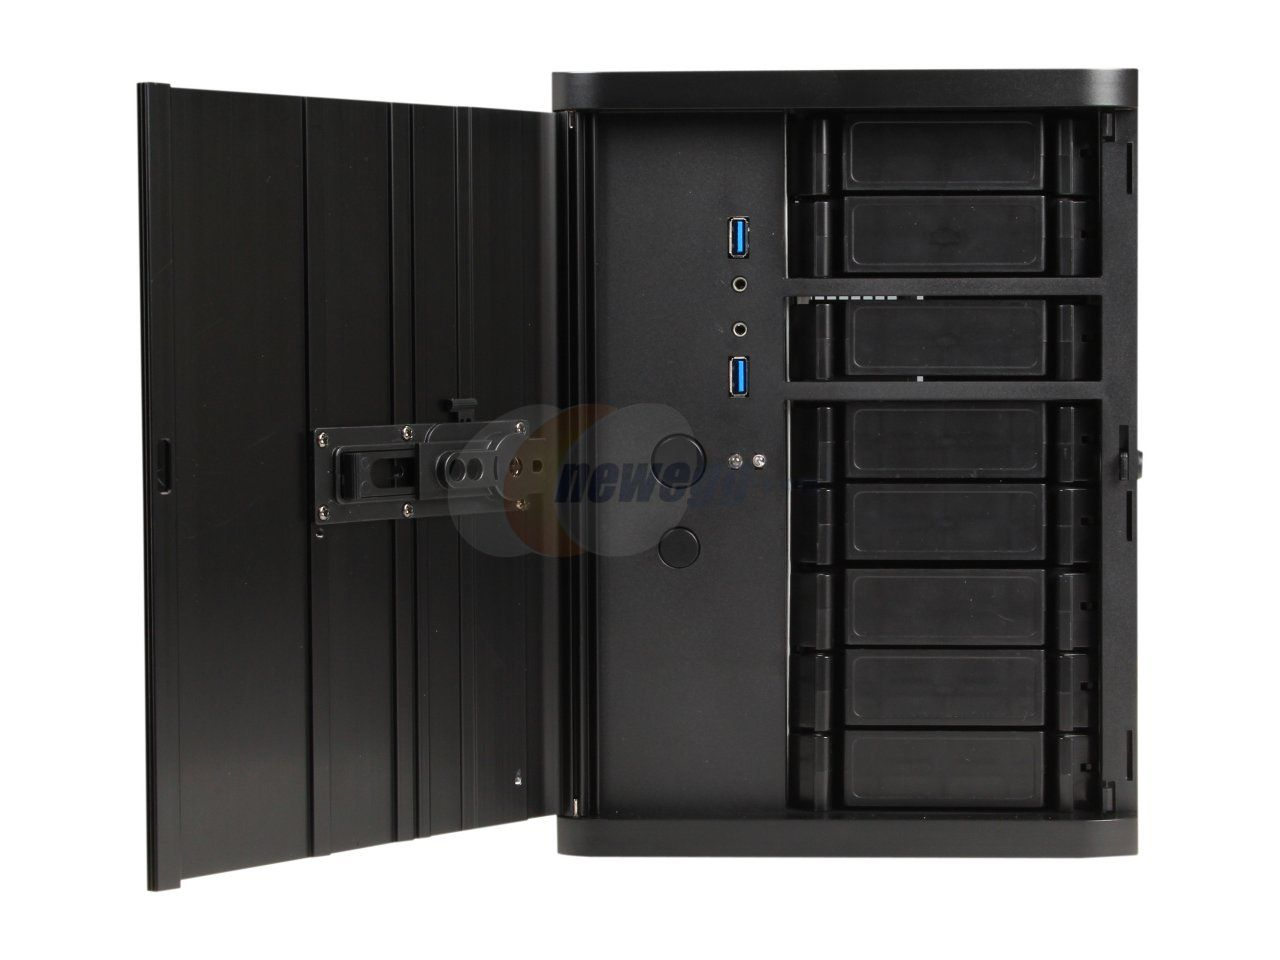 SilverStone DS380B Black Aluminum front door, SECC body NAS chassis Premium 8-bay Small Form Factor NAS Chassis SFX PSU (sold separately) Power Supply - Newegg.com